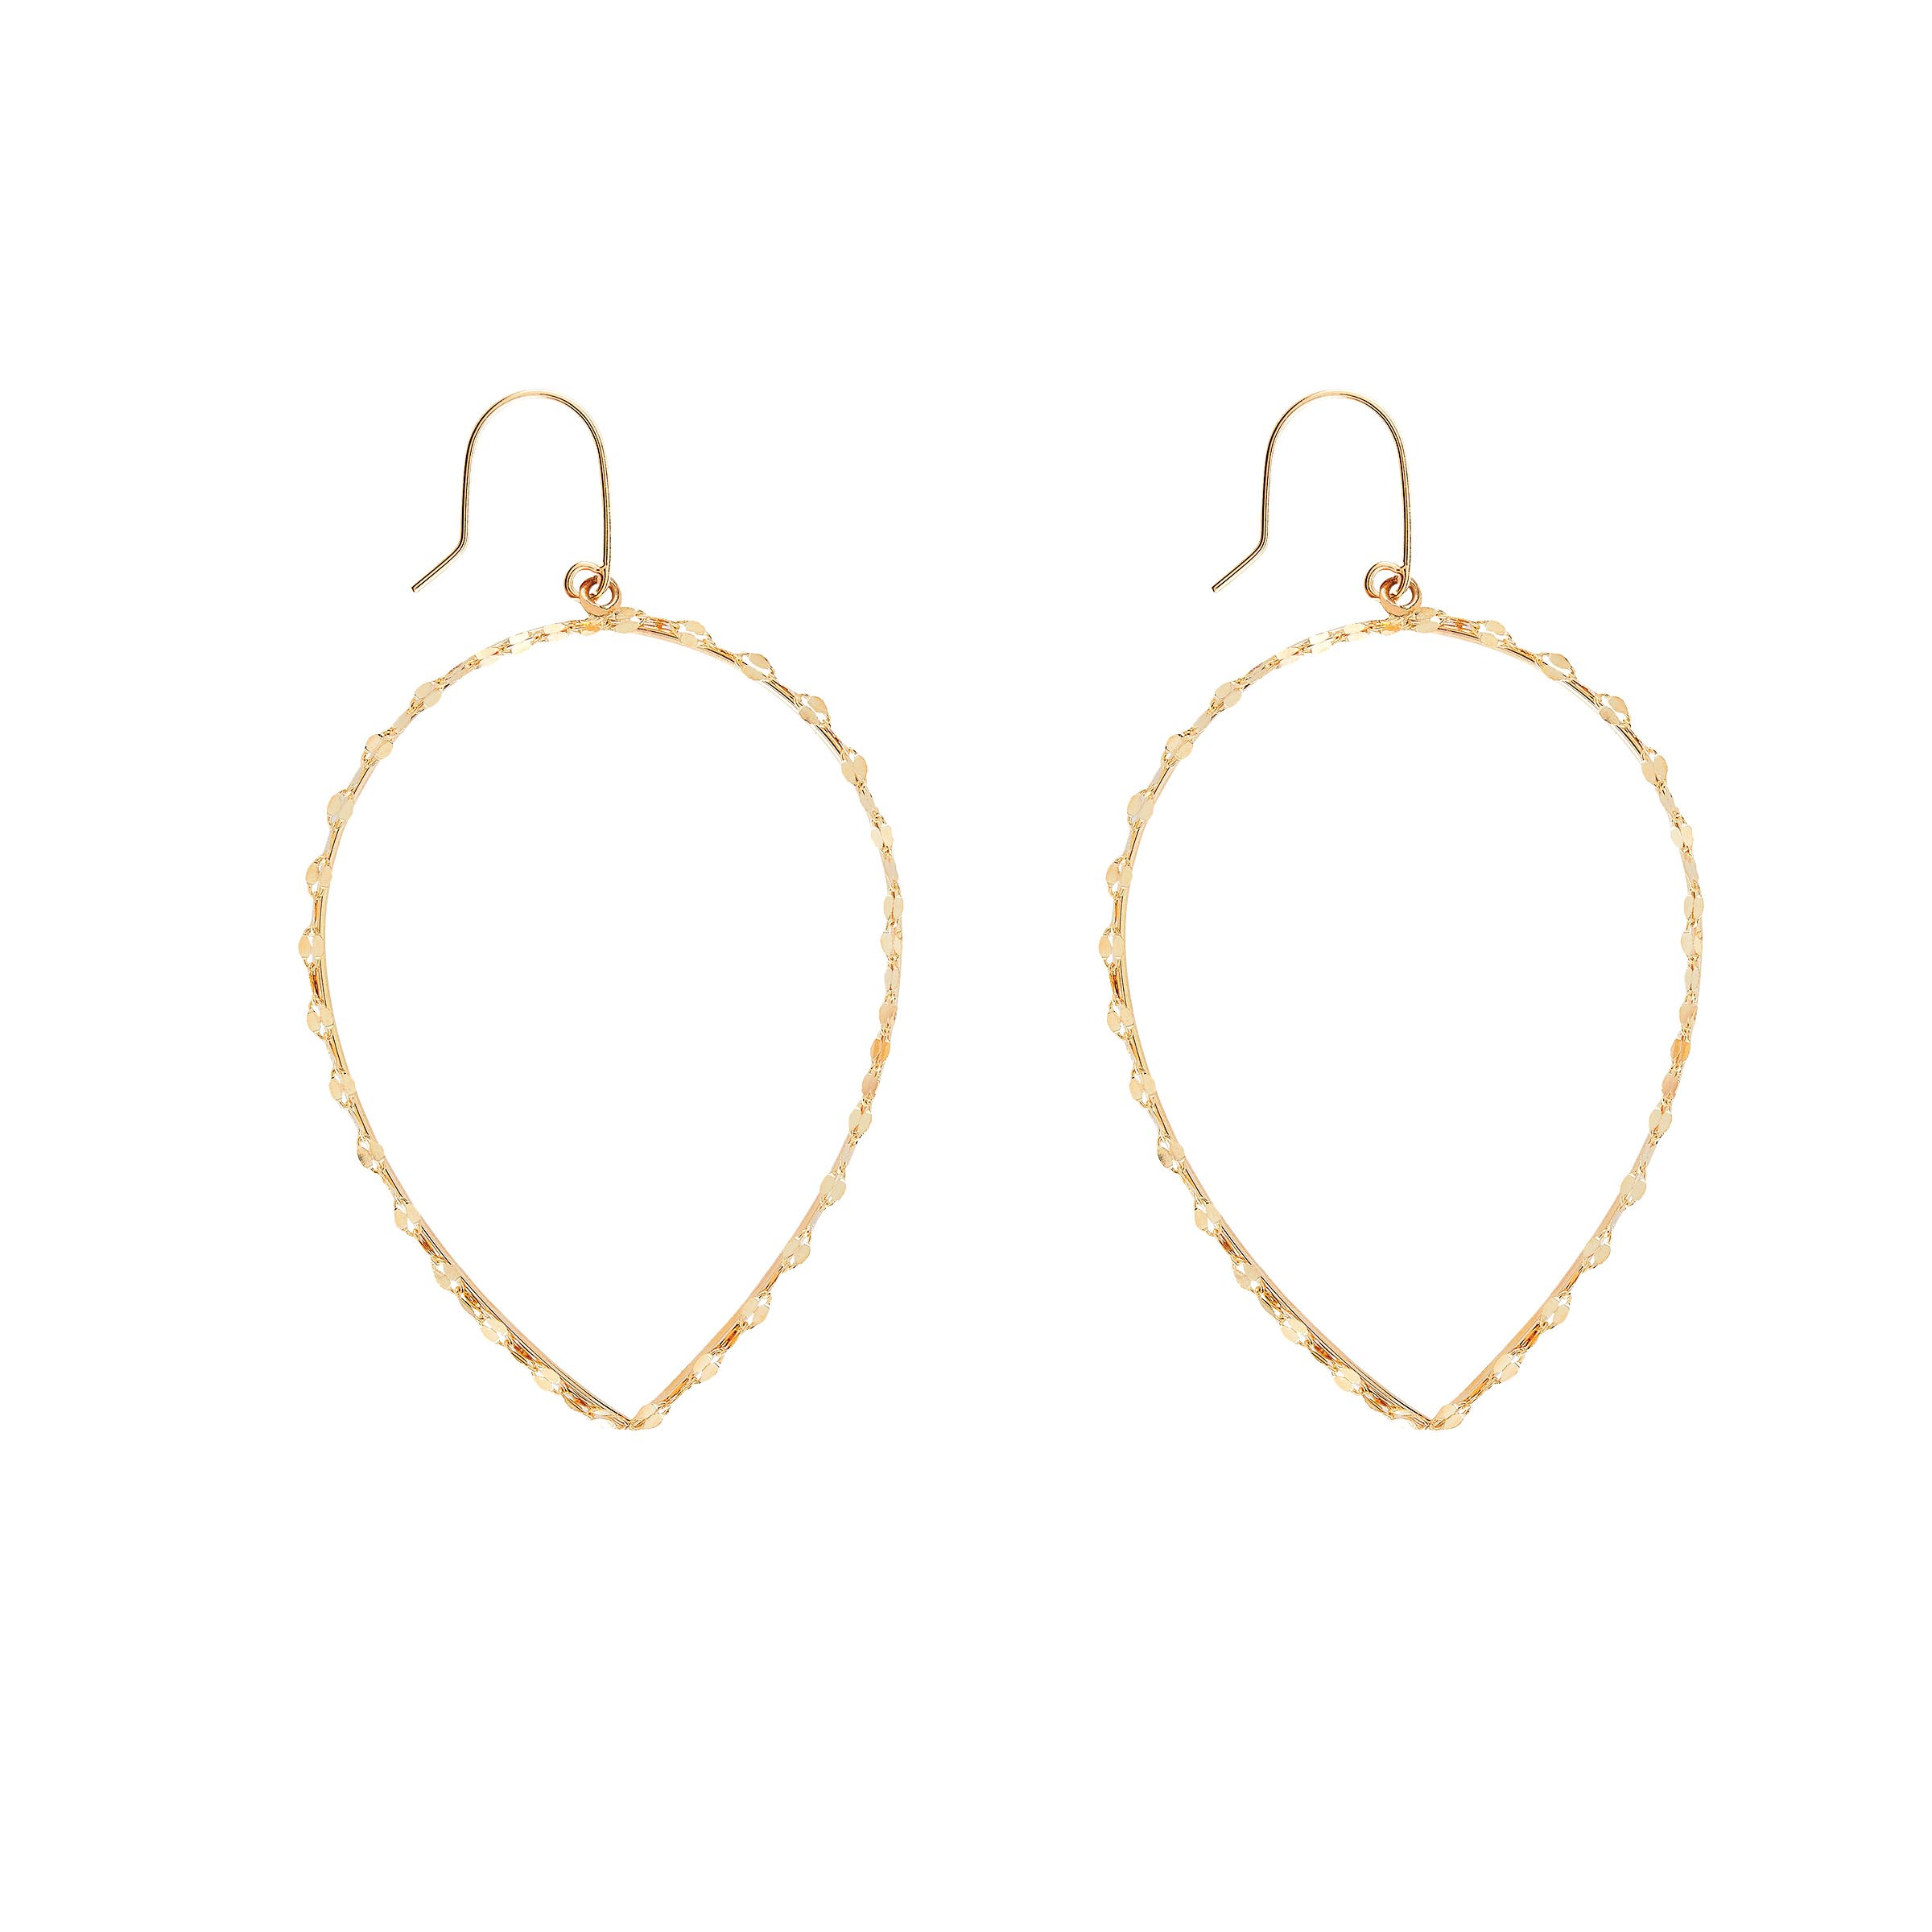 pear diamonds earrings h center product white of color sold gold shape g shaped out